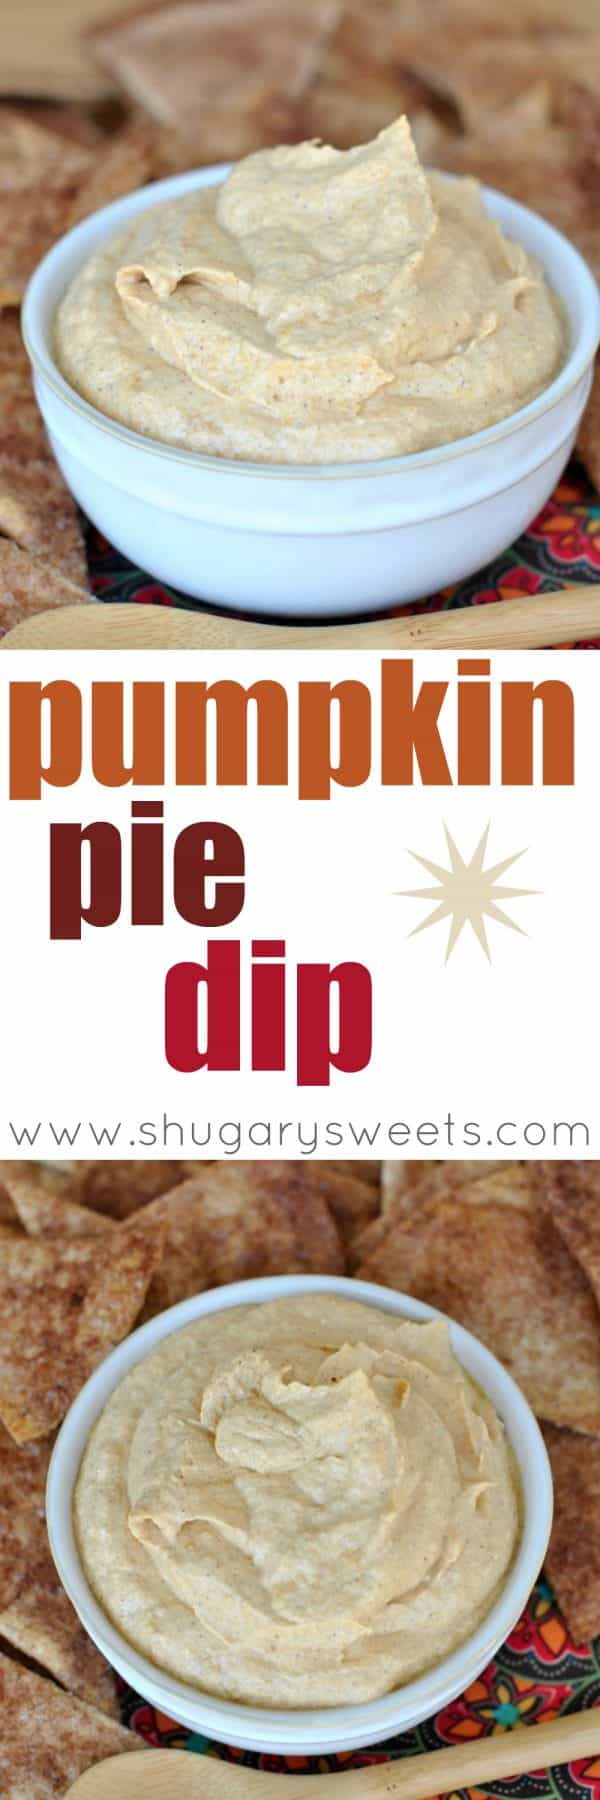 This month I am teaming up with the American Dairy Association to create a delicious Back to School Dairy Fuel recipe! This delicious Pumpkin Pie Dip is made with Greek Yogurt and perfect in lunchboxes or as an after school snack!